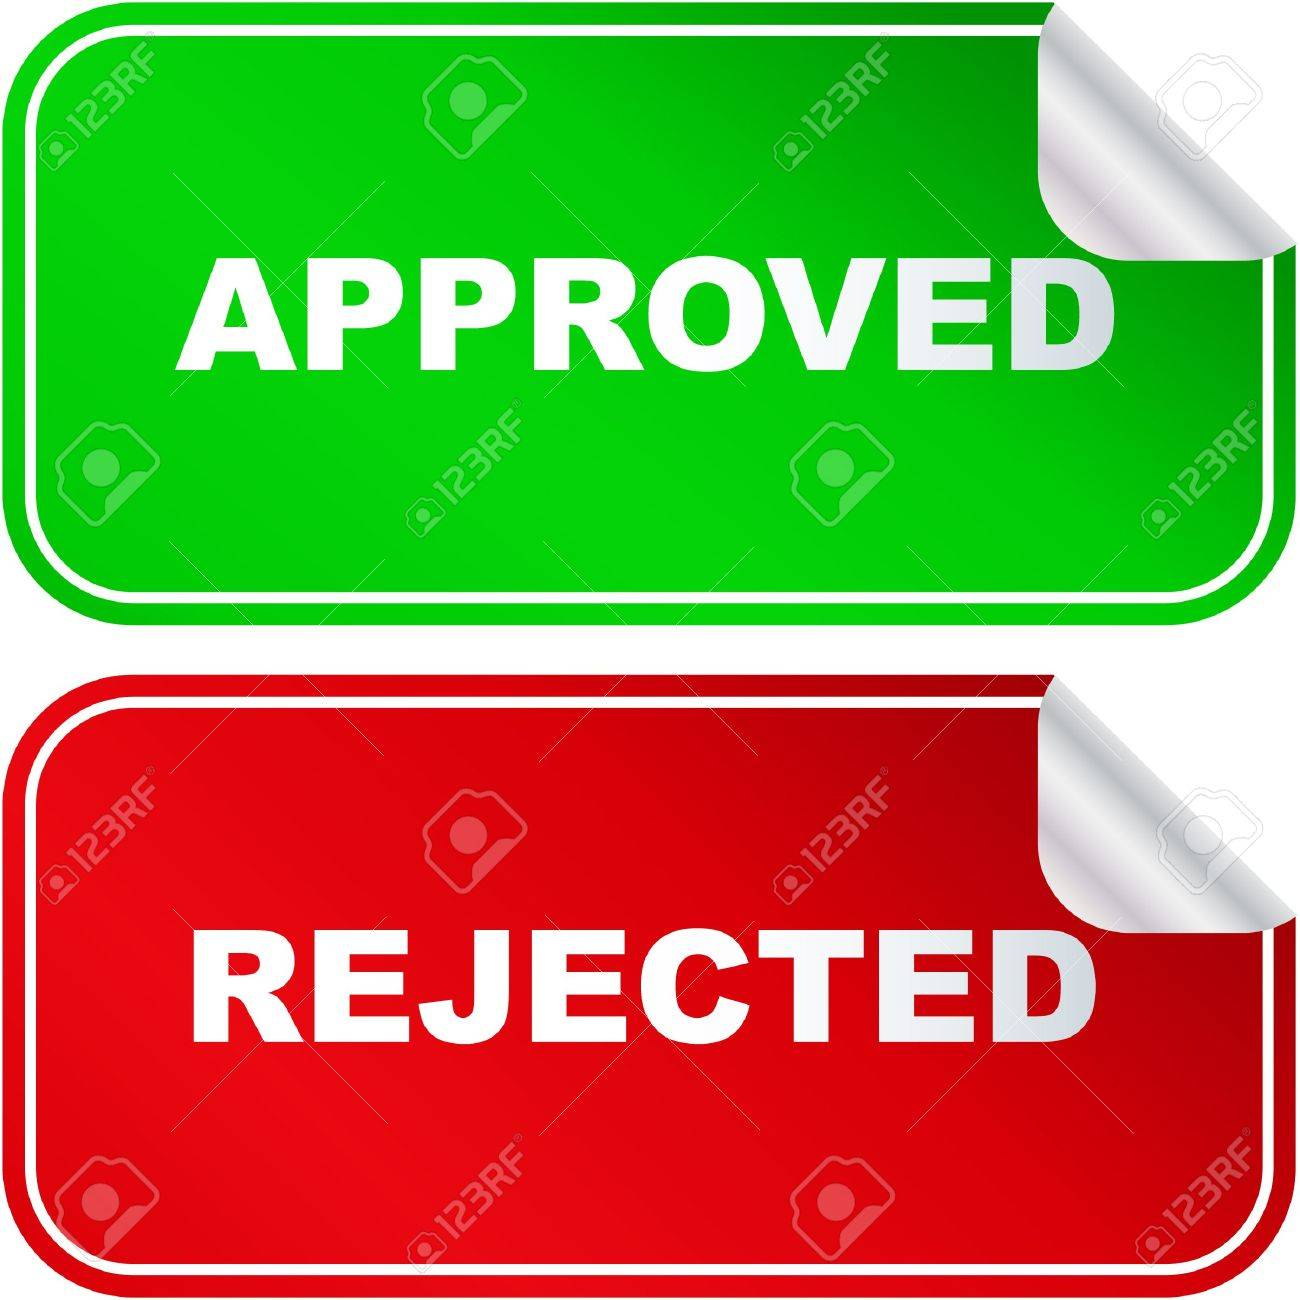 Approved and rejected stickers. Stock Vector - 6544974